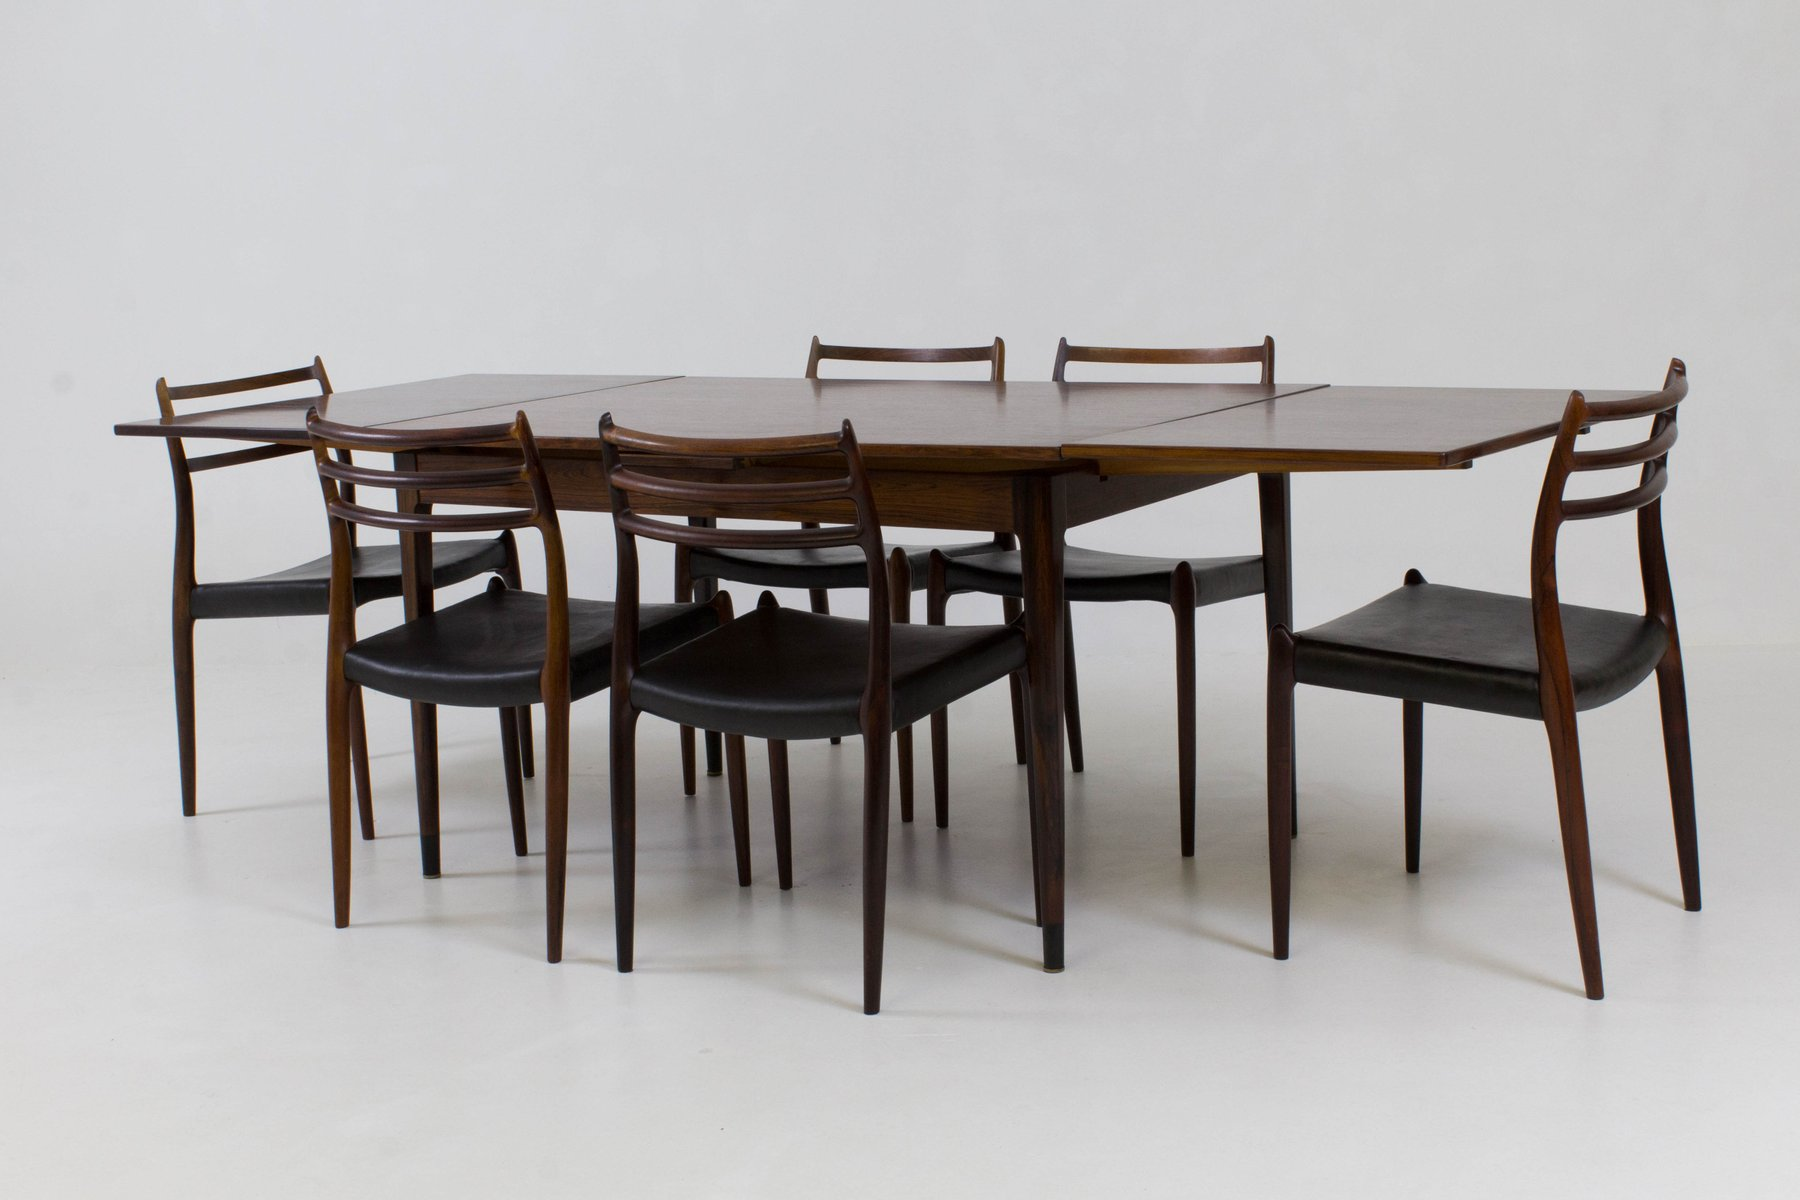 Perfect Danish Dining Room Set By Niels Otto Møller For JL Møllers, 1960s